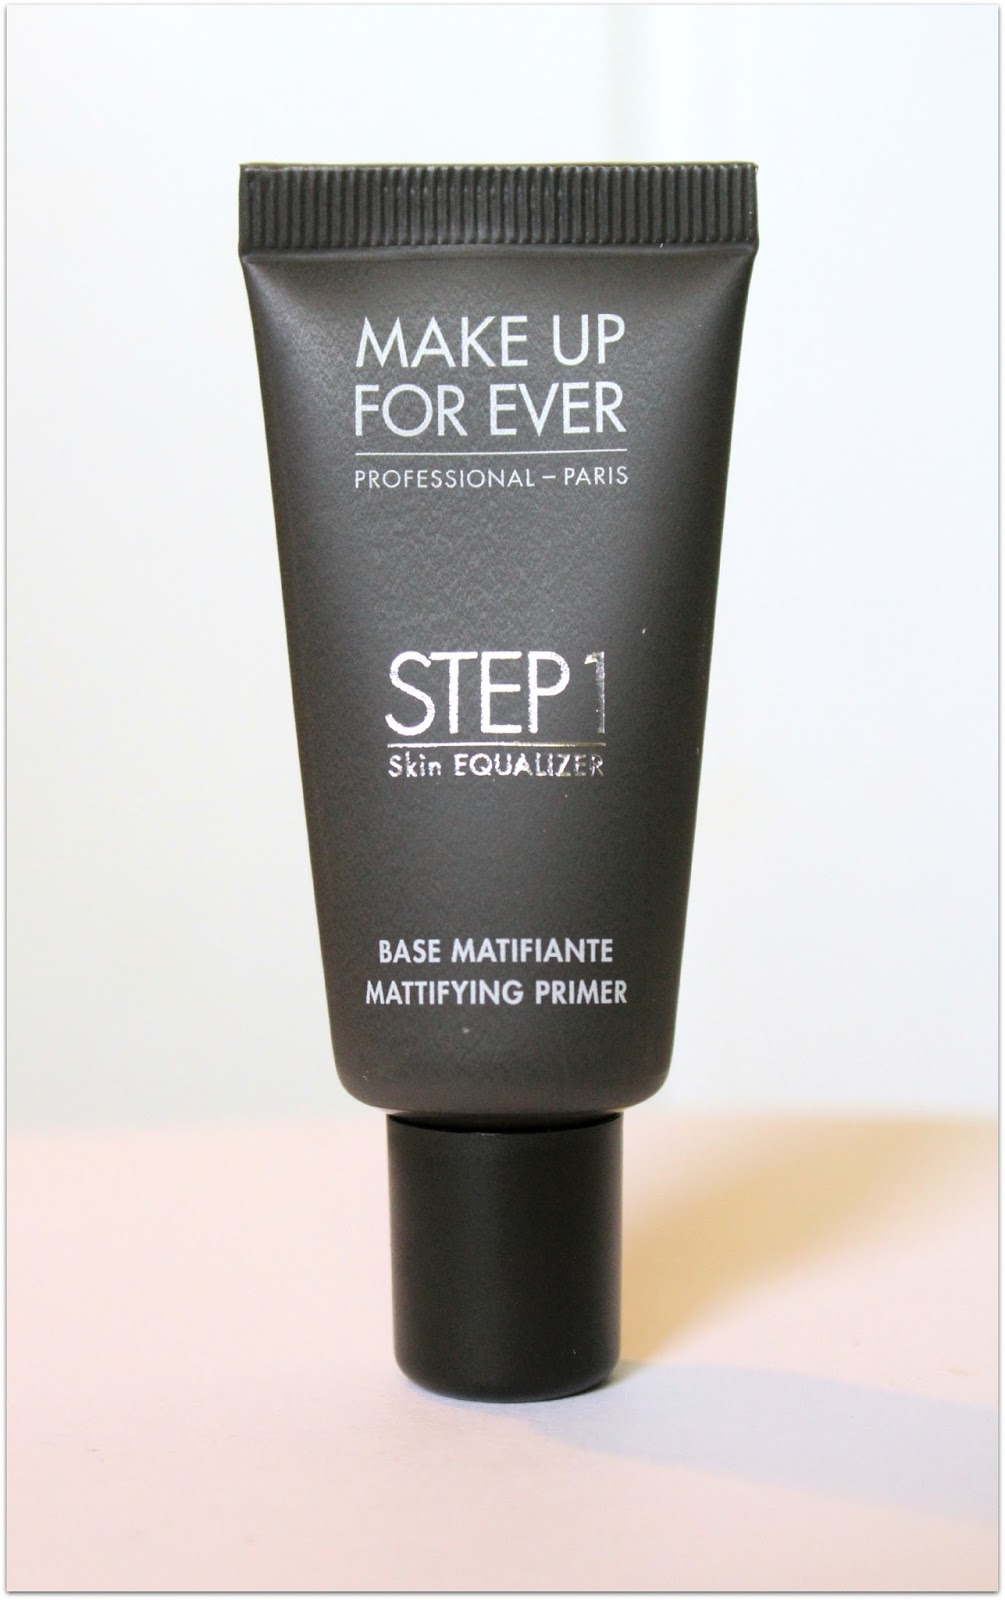 Step 1: Life Is Short. Buy The Makeup.: Review: Make Up For Ever